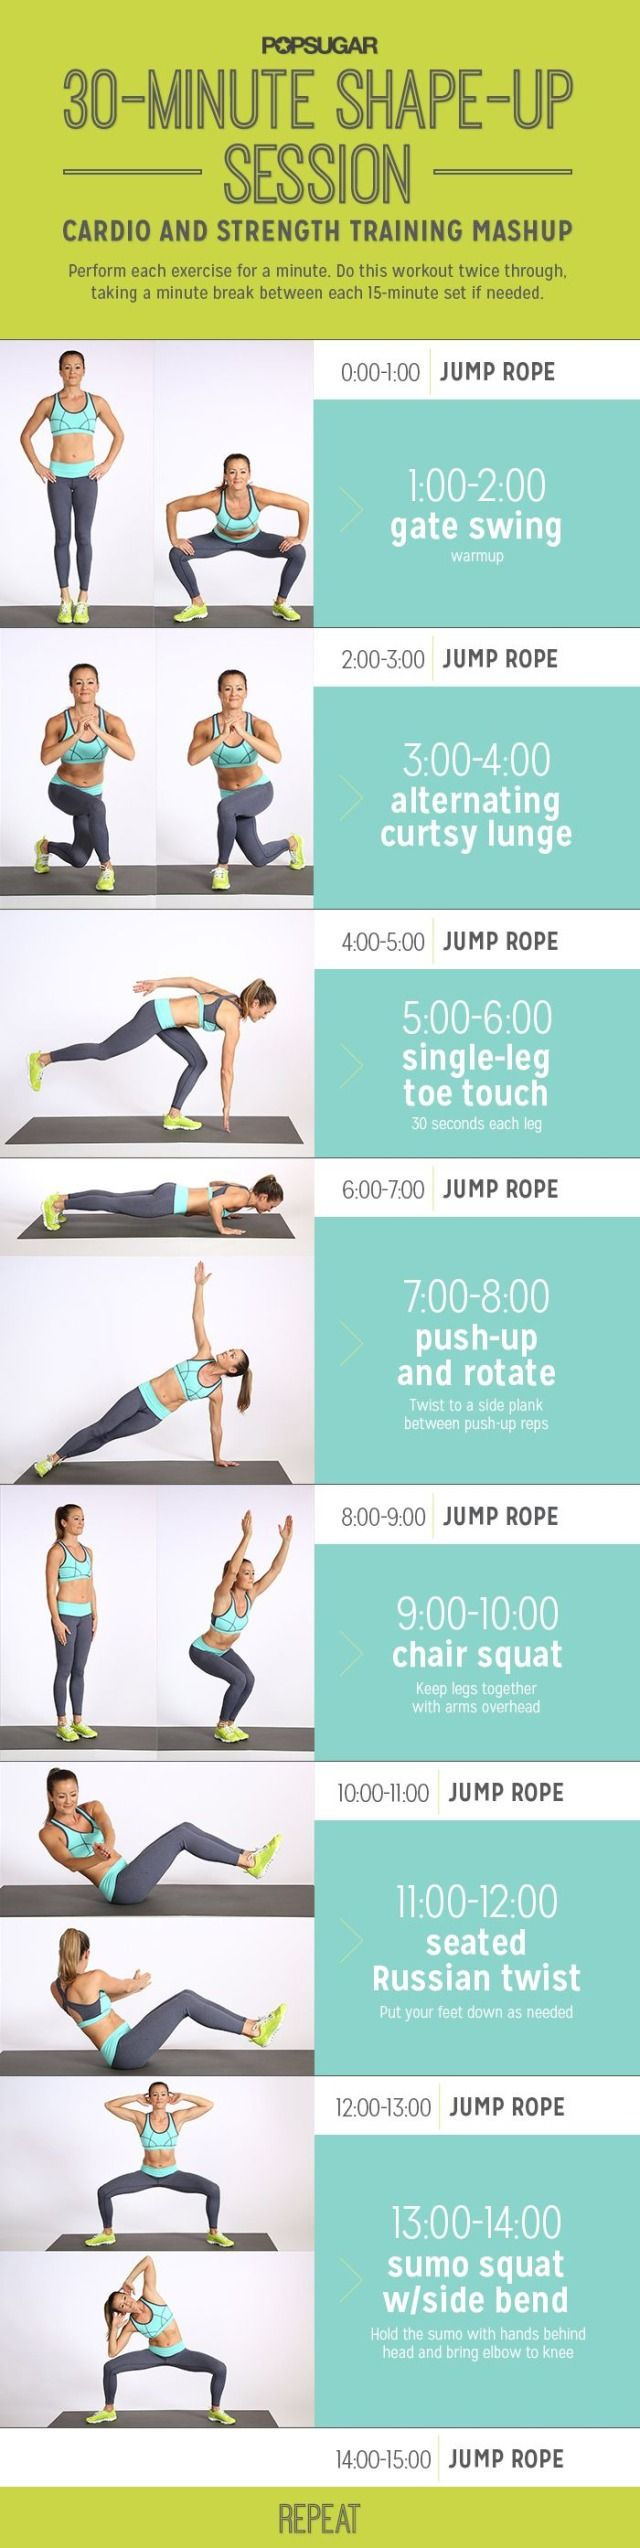 Print out this easy 30-minute step-by-step workout circuit that you can do in the gym or in your home. It focuses on cardio and strength training and will tone your whole bod.